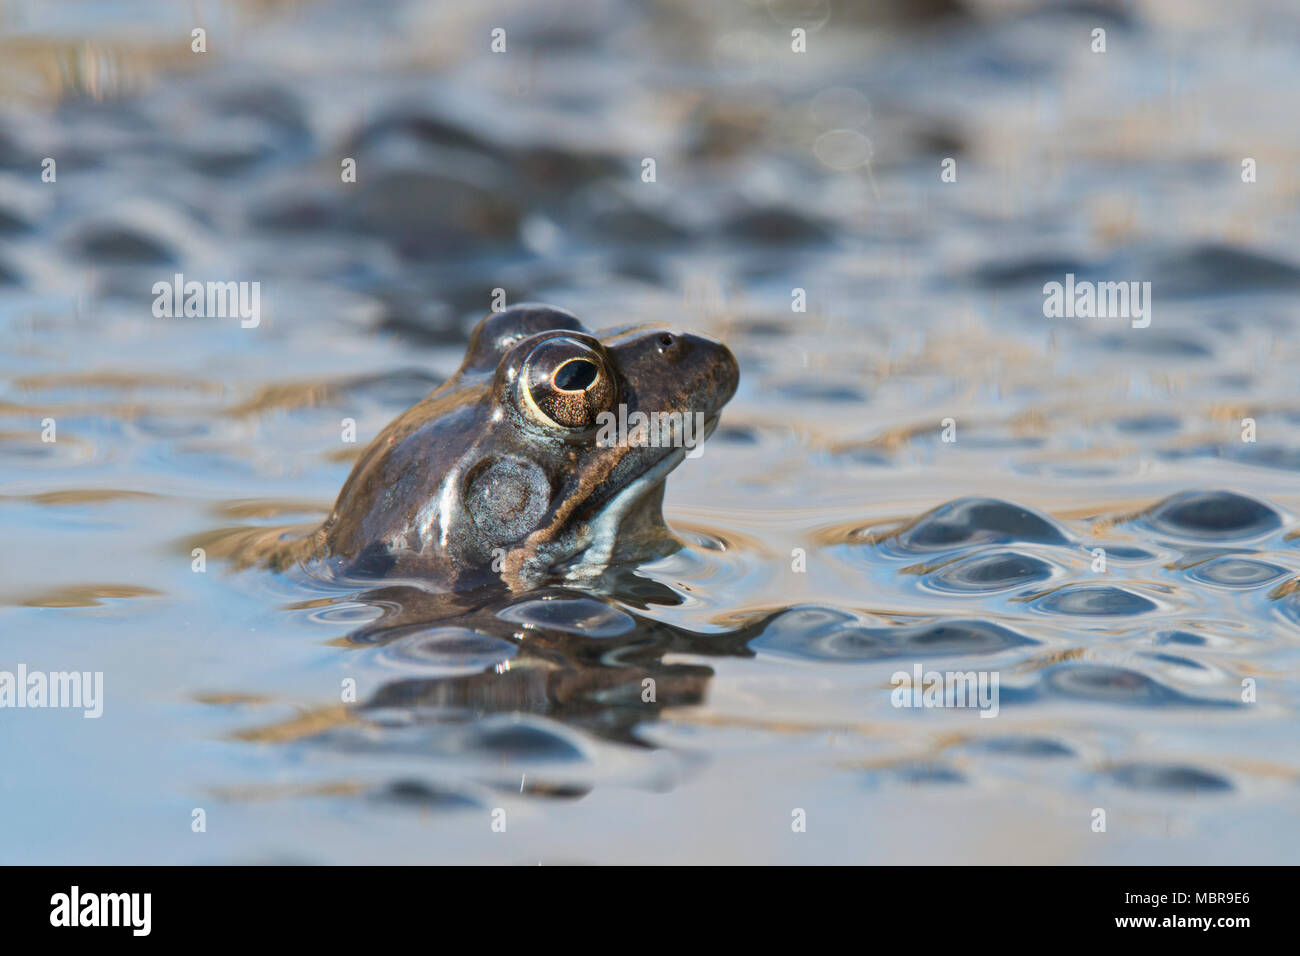 Common frog (Rana temporaria) spawning in waters, Emsland, Lower Saxony, Germany - Stock Image